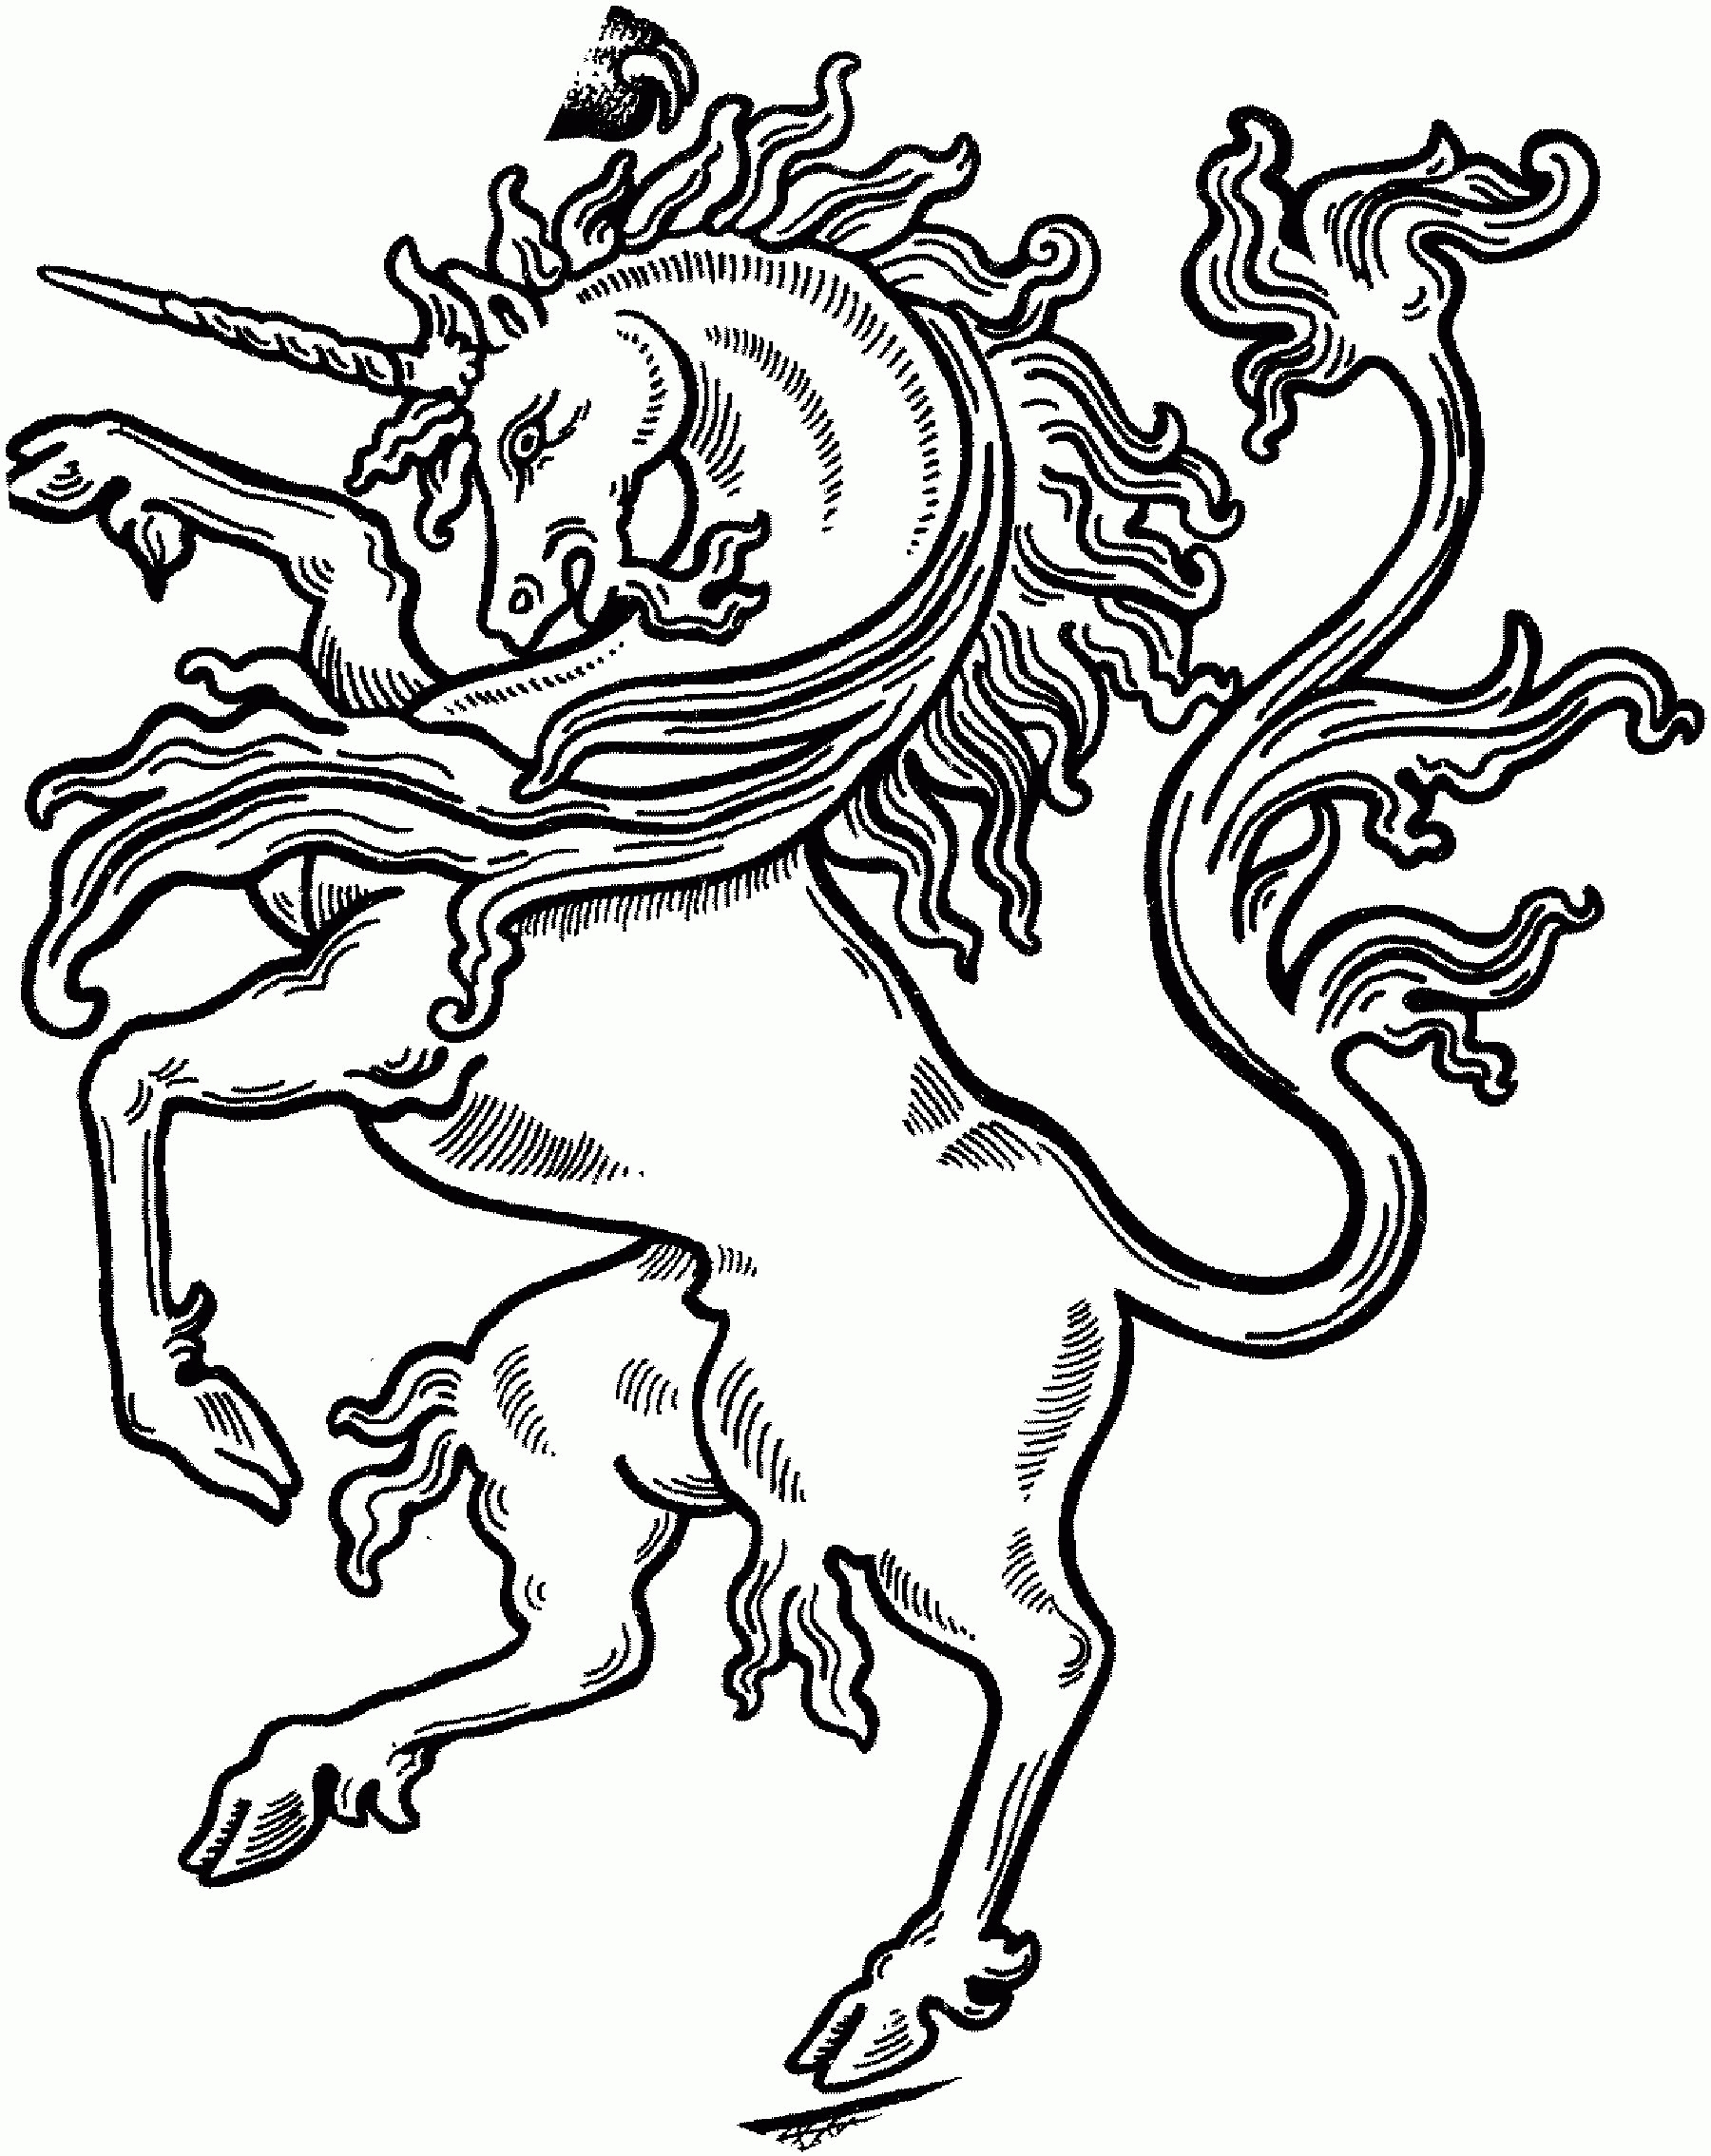 Unicorn Coloring Pages - Coloring Pages Magic Unicorn Coloring Page Contemplative